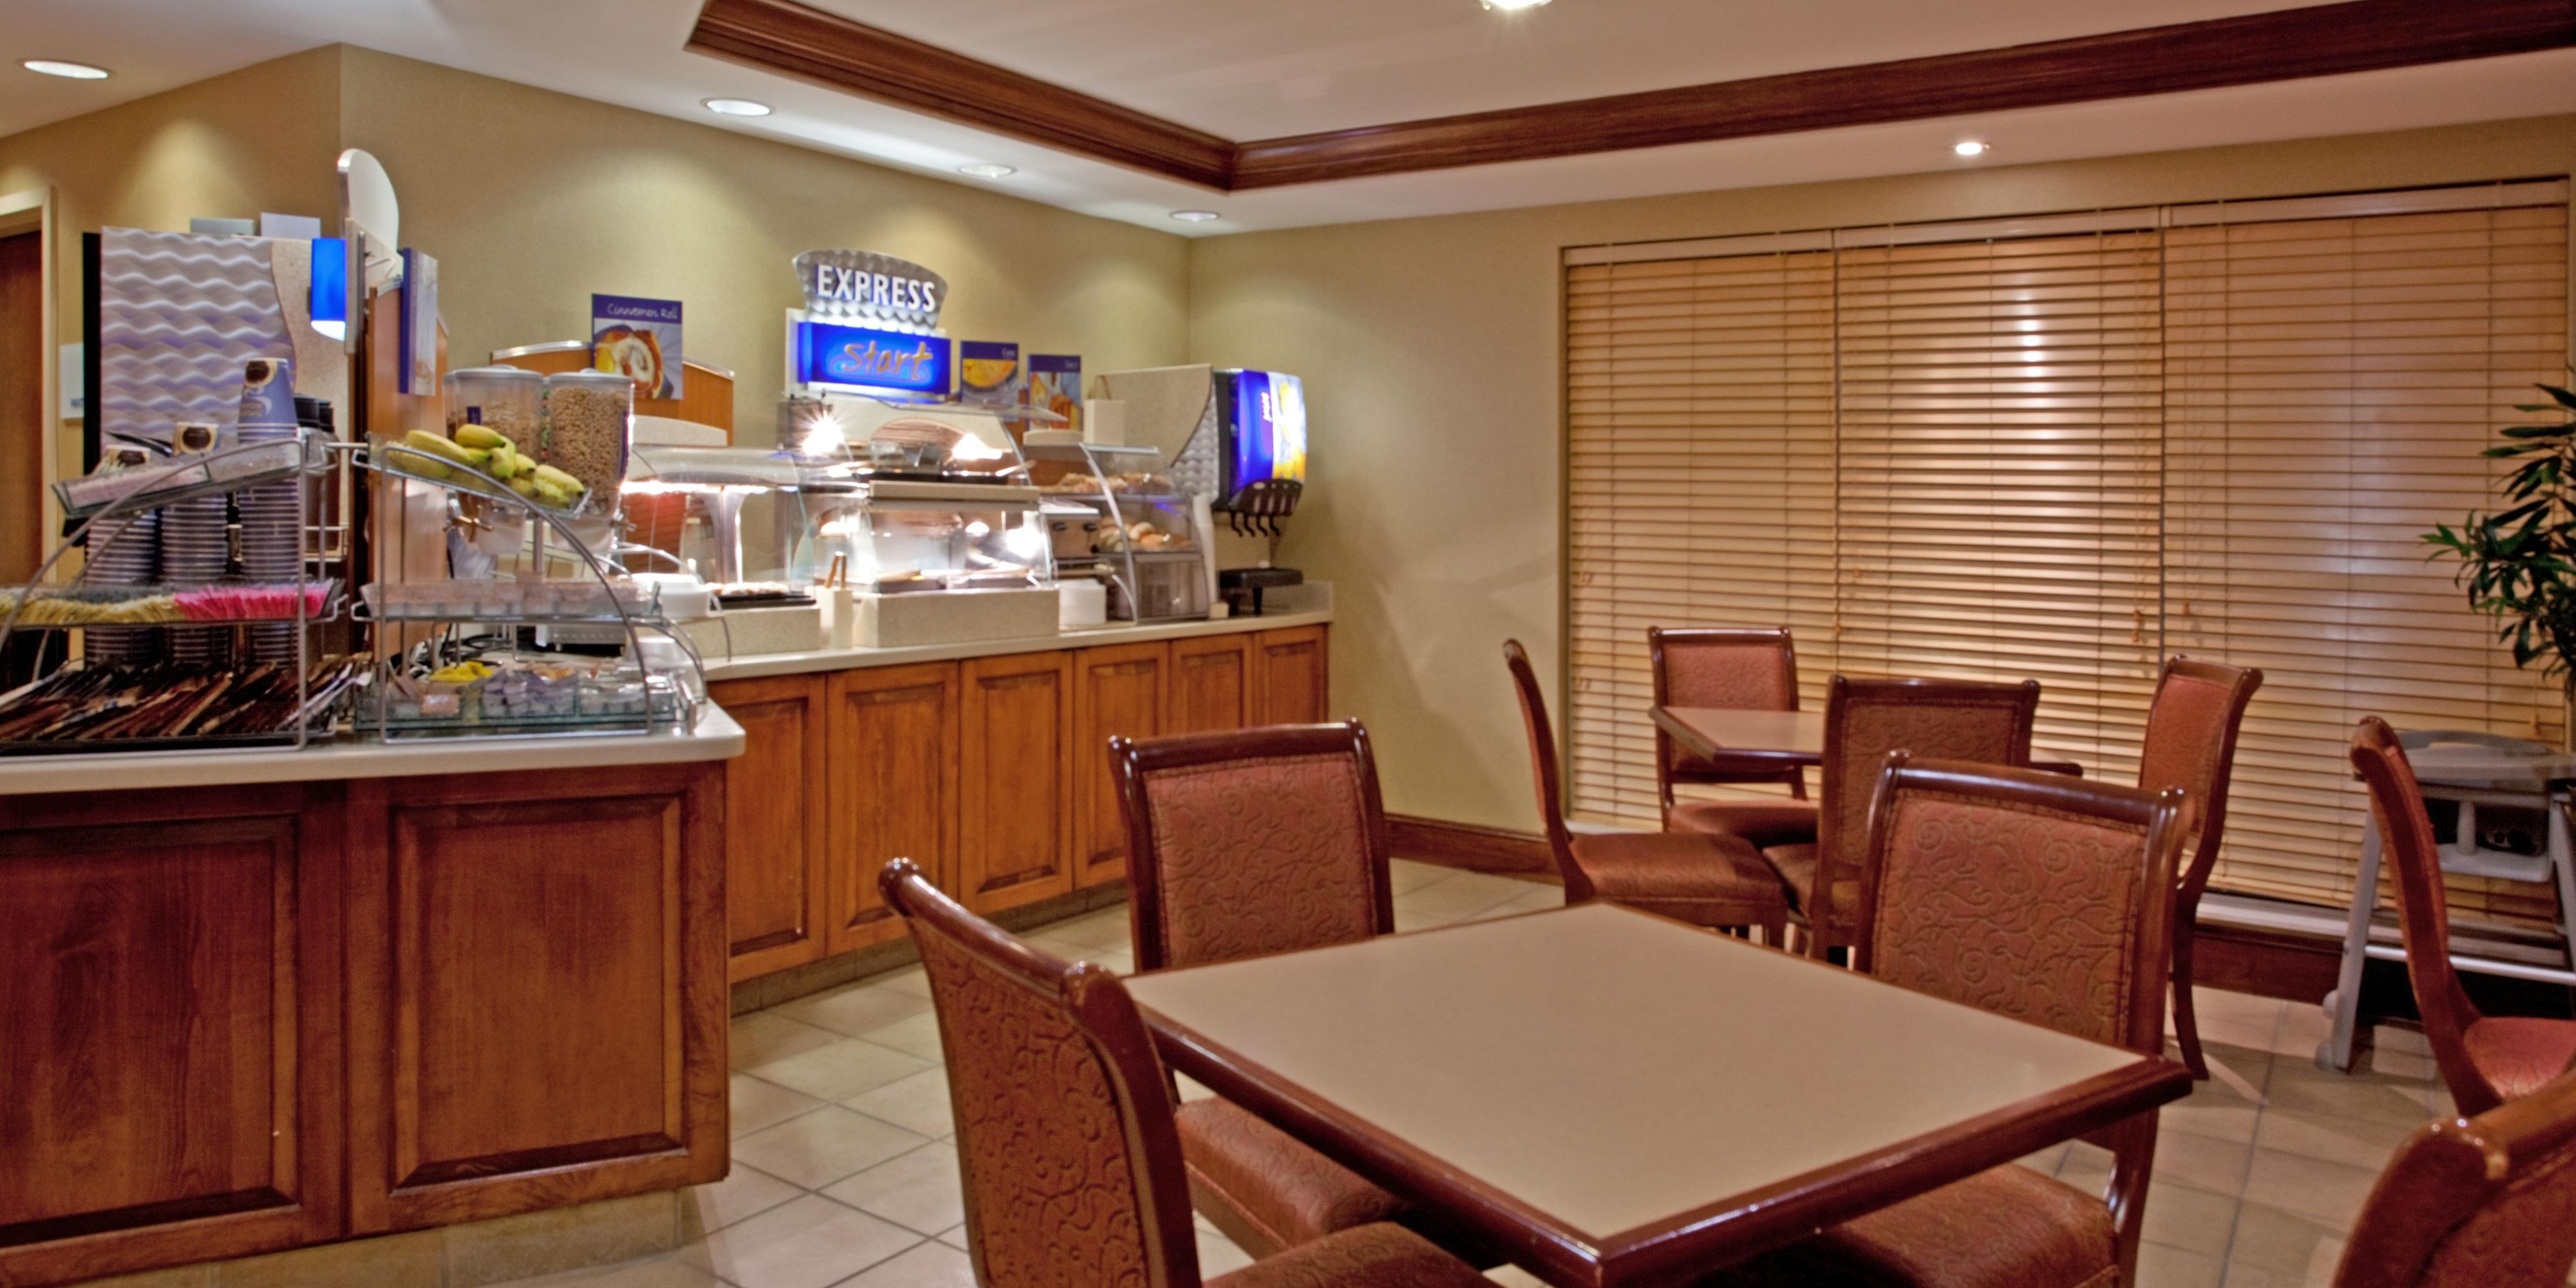 Furniture stores in chapel hill nc - Holiday Inn Express Chapel Hill 2533184530 2x1